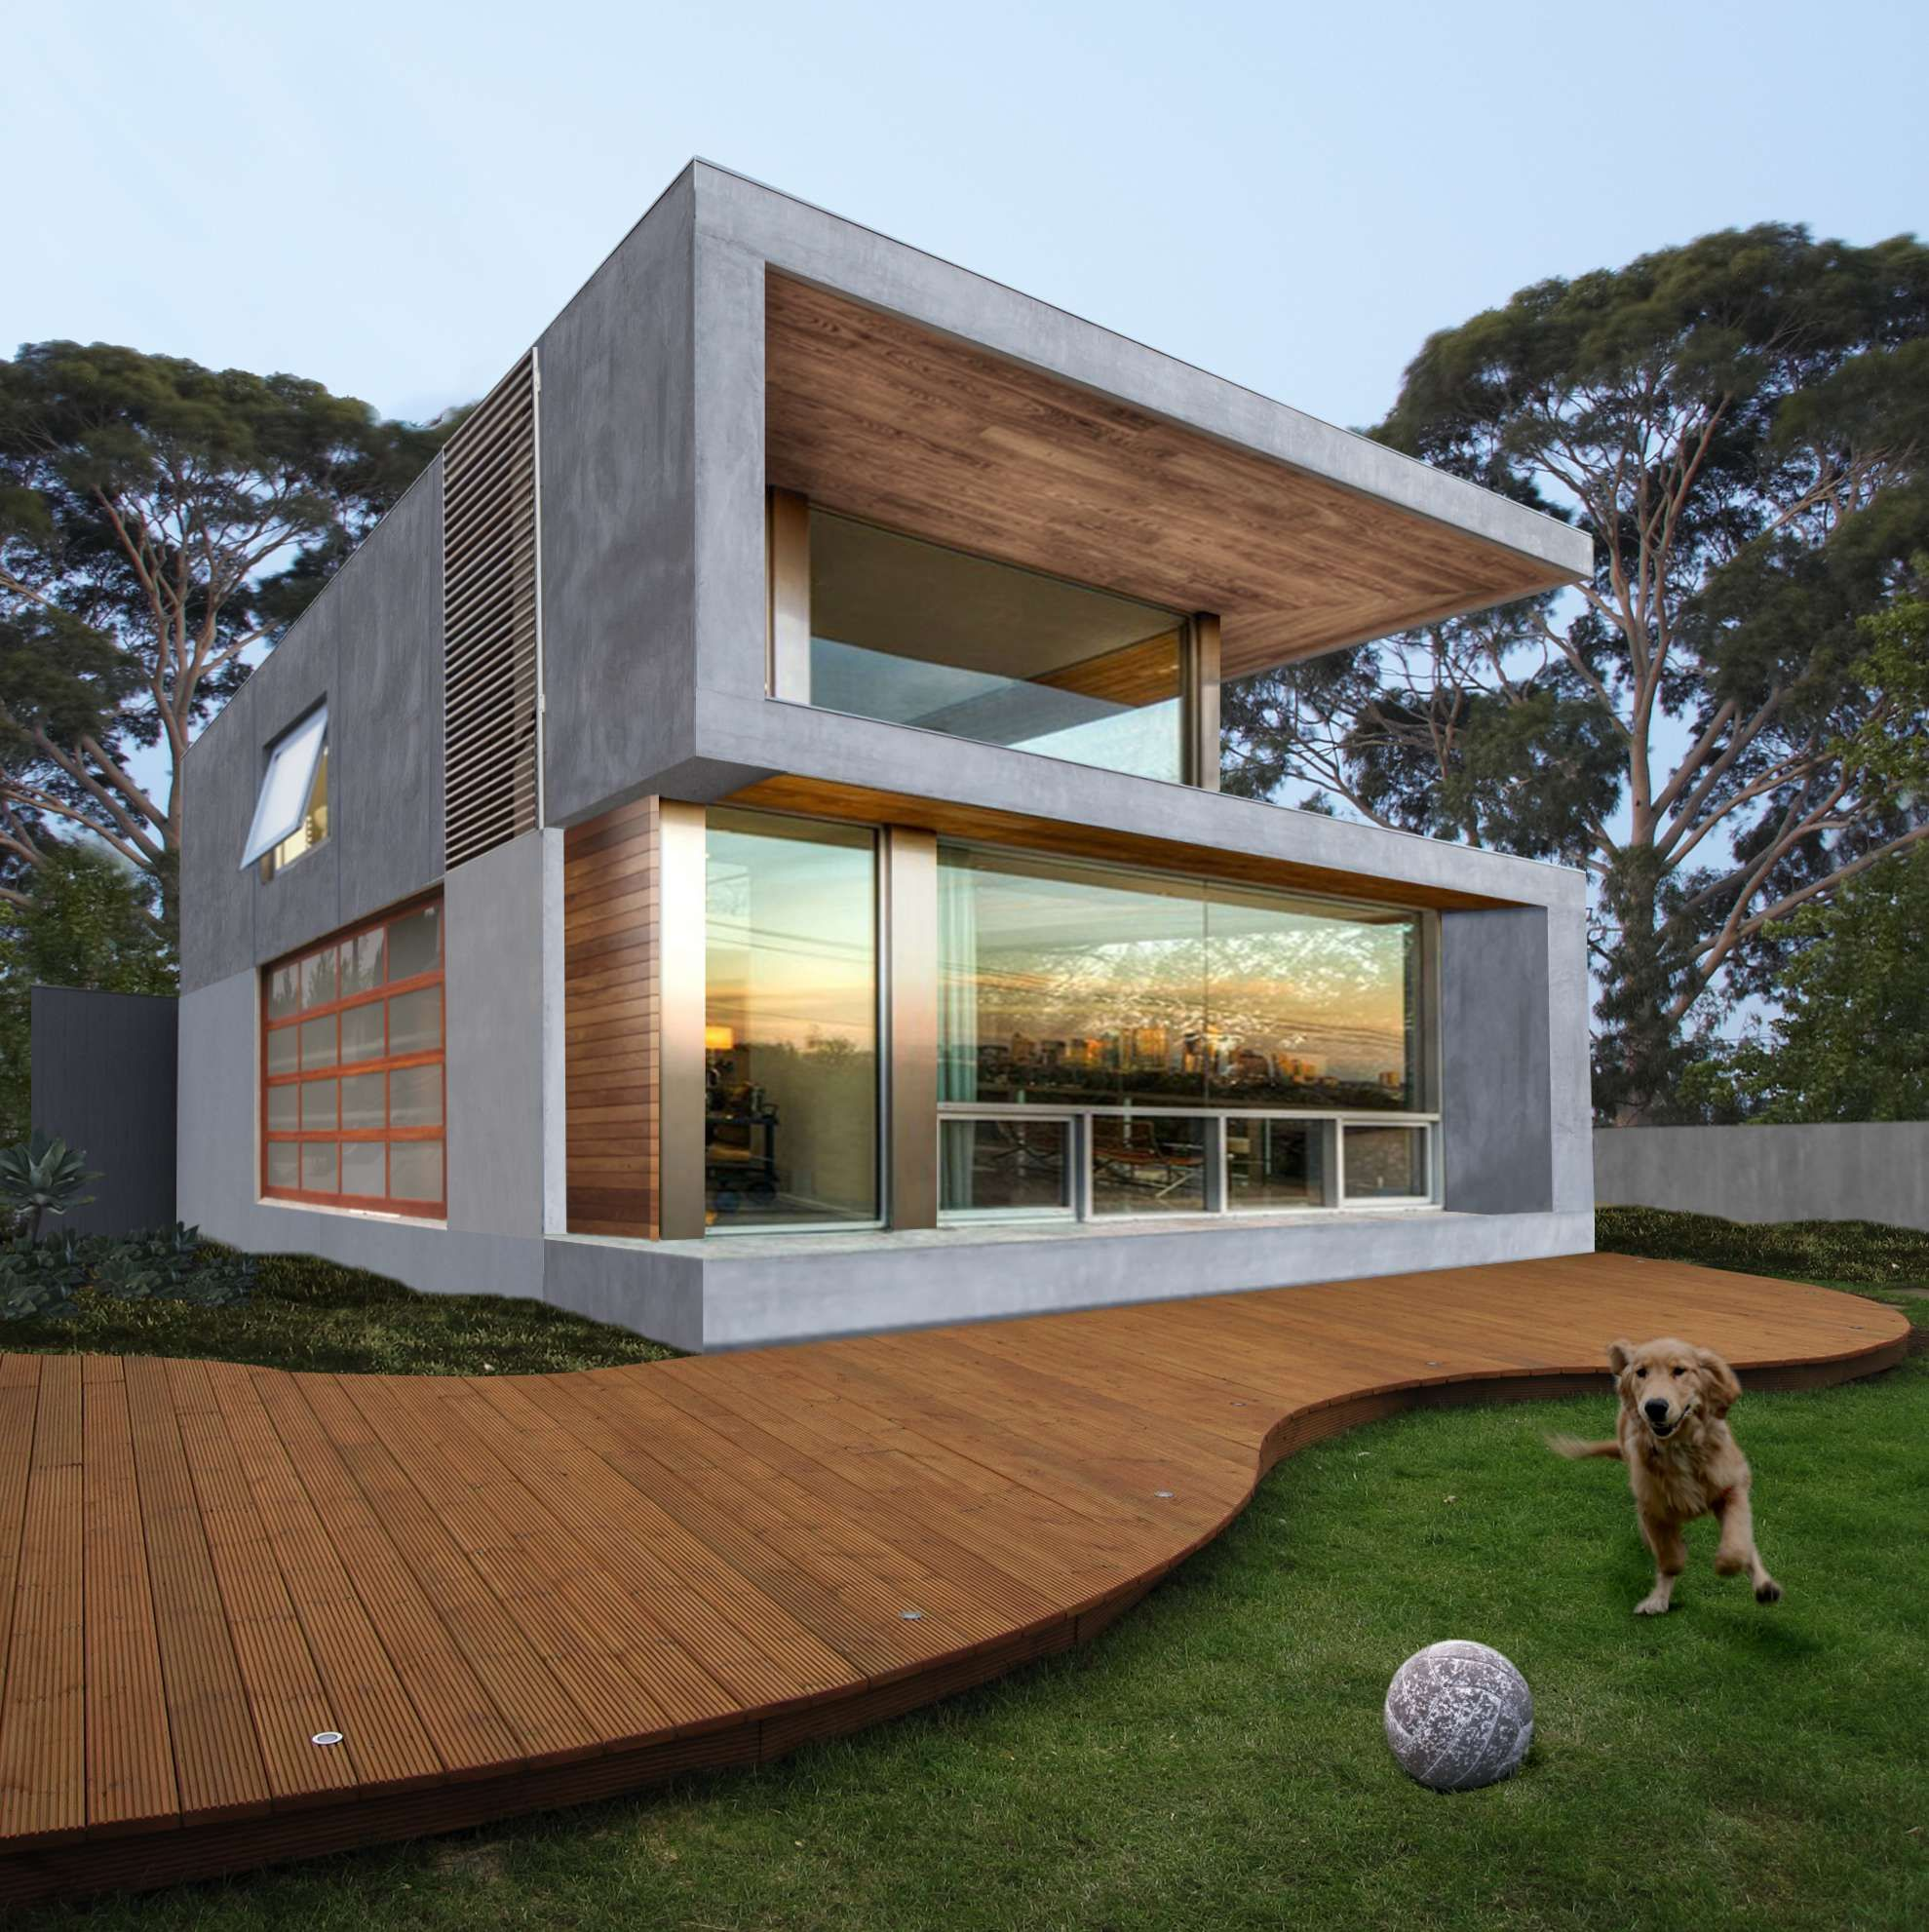 Melbourne Based Architecture Practice: Wolf Architects | Houses and